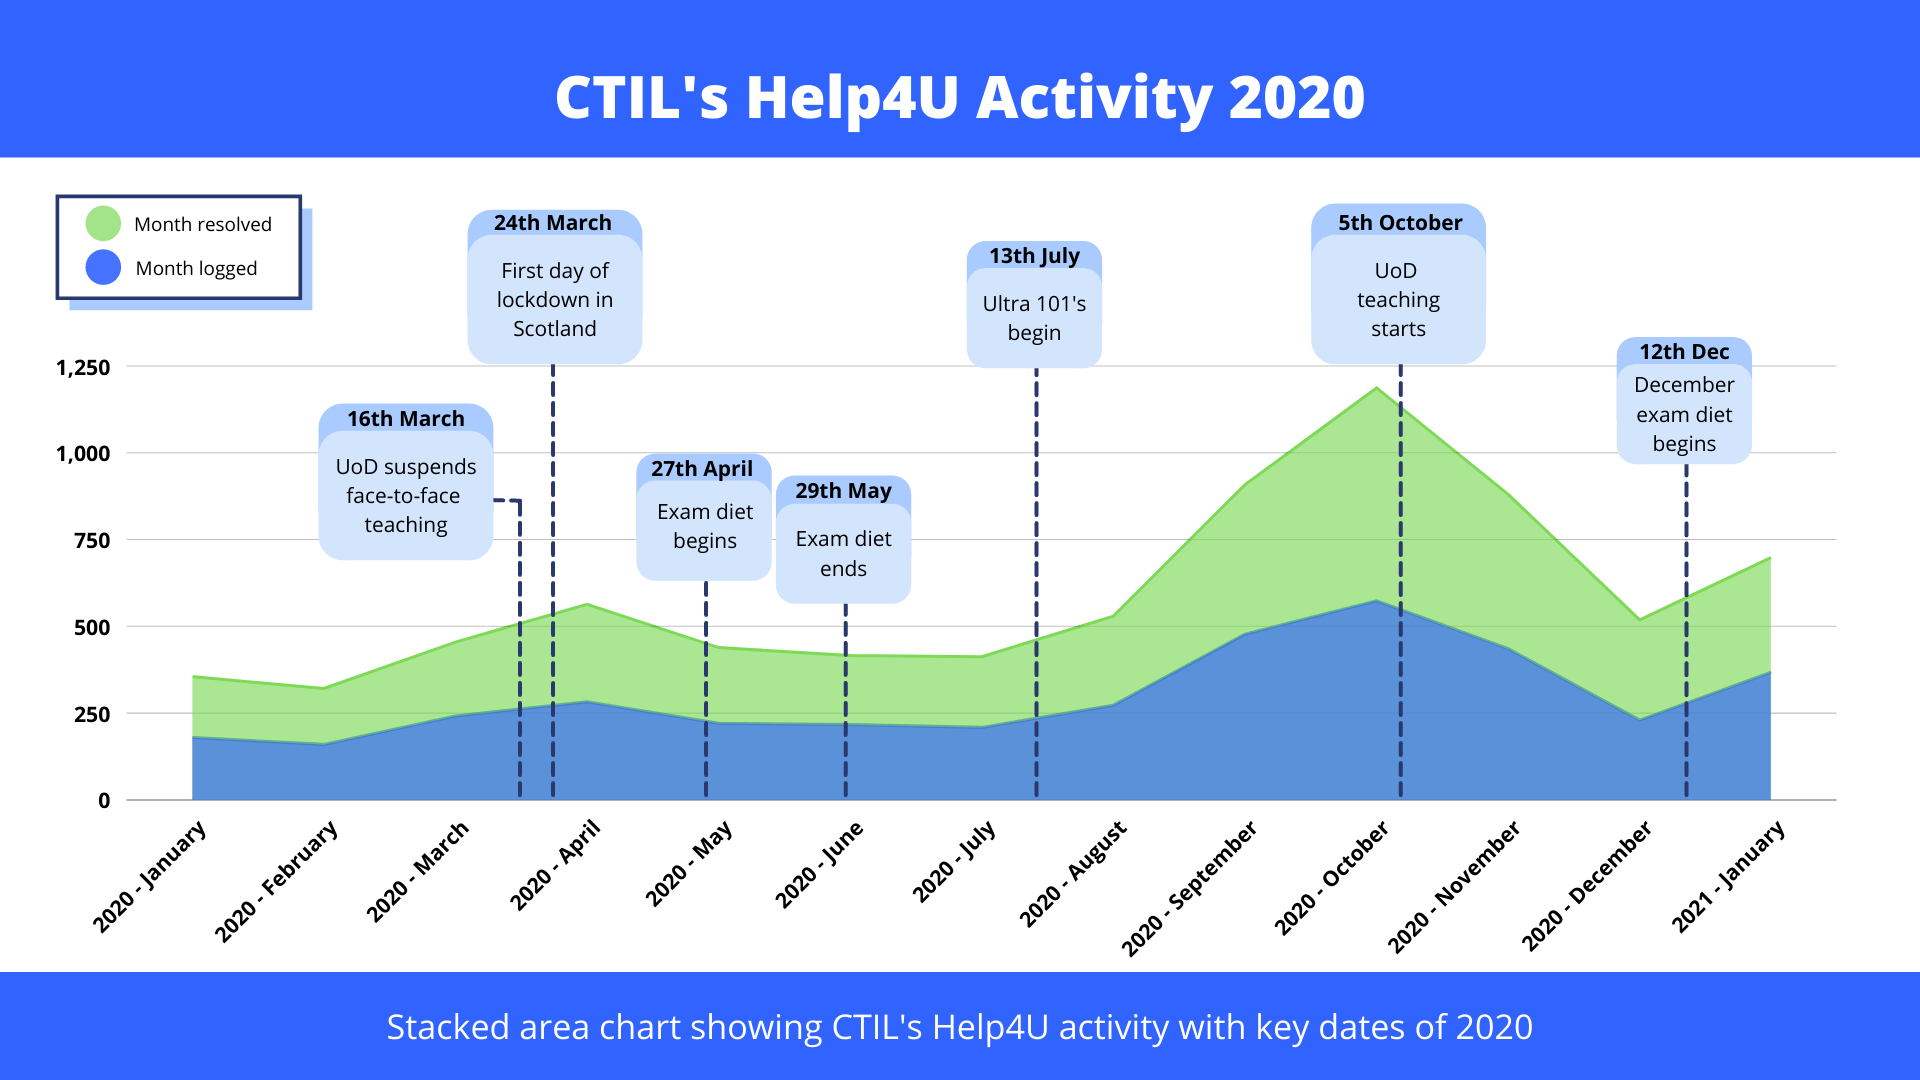 Infographic that shows CTIL Help4U calls over 2020 alongside key dates for Covid lockdown and university activities.